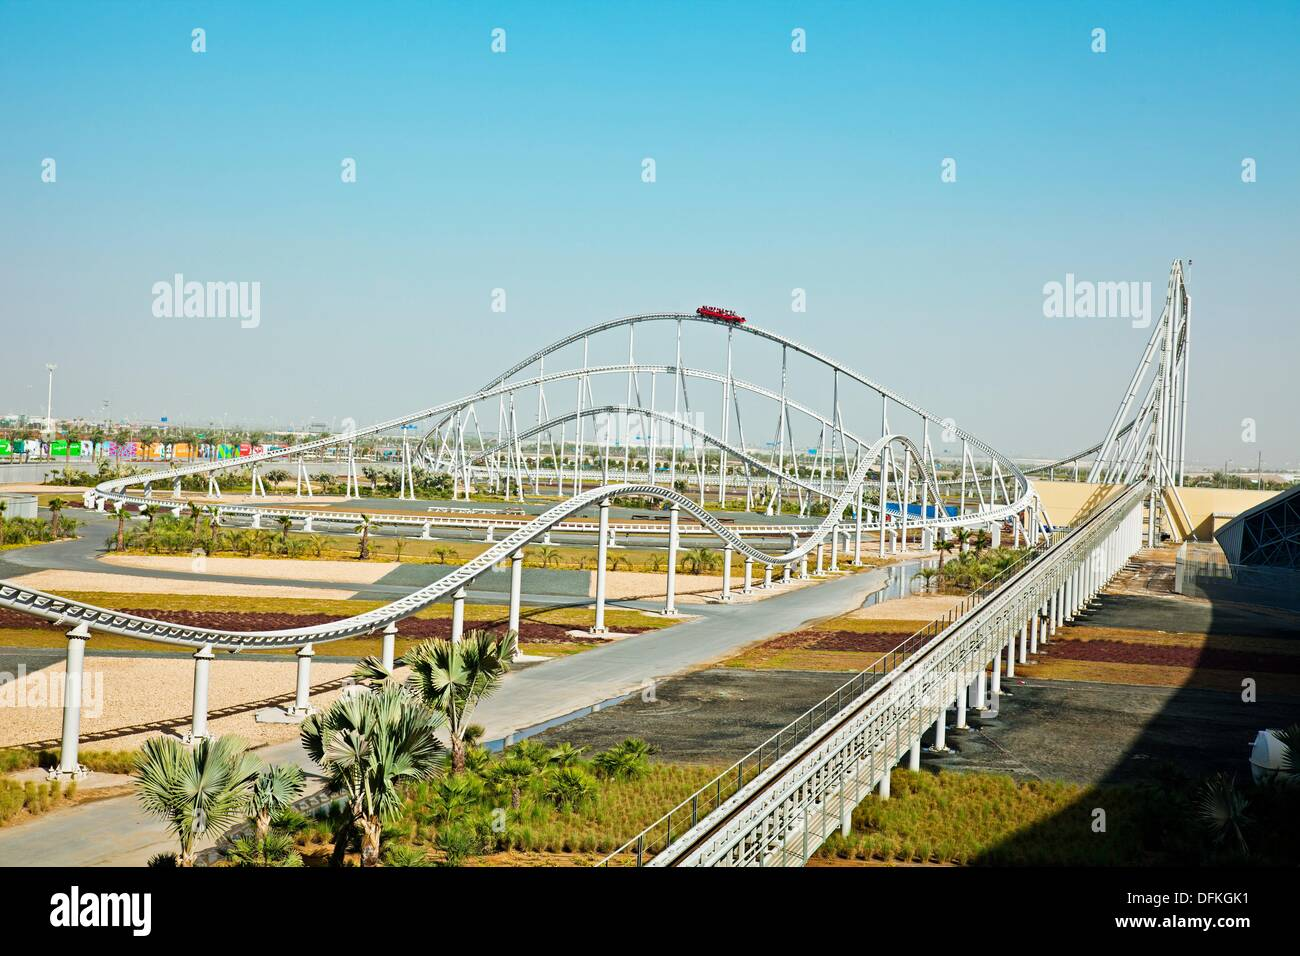 Visitors Riding World S Fastest Roller Coaster Formula Rossa At Stock Photo Alamy